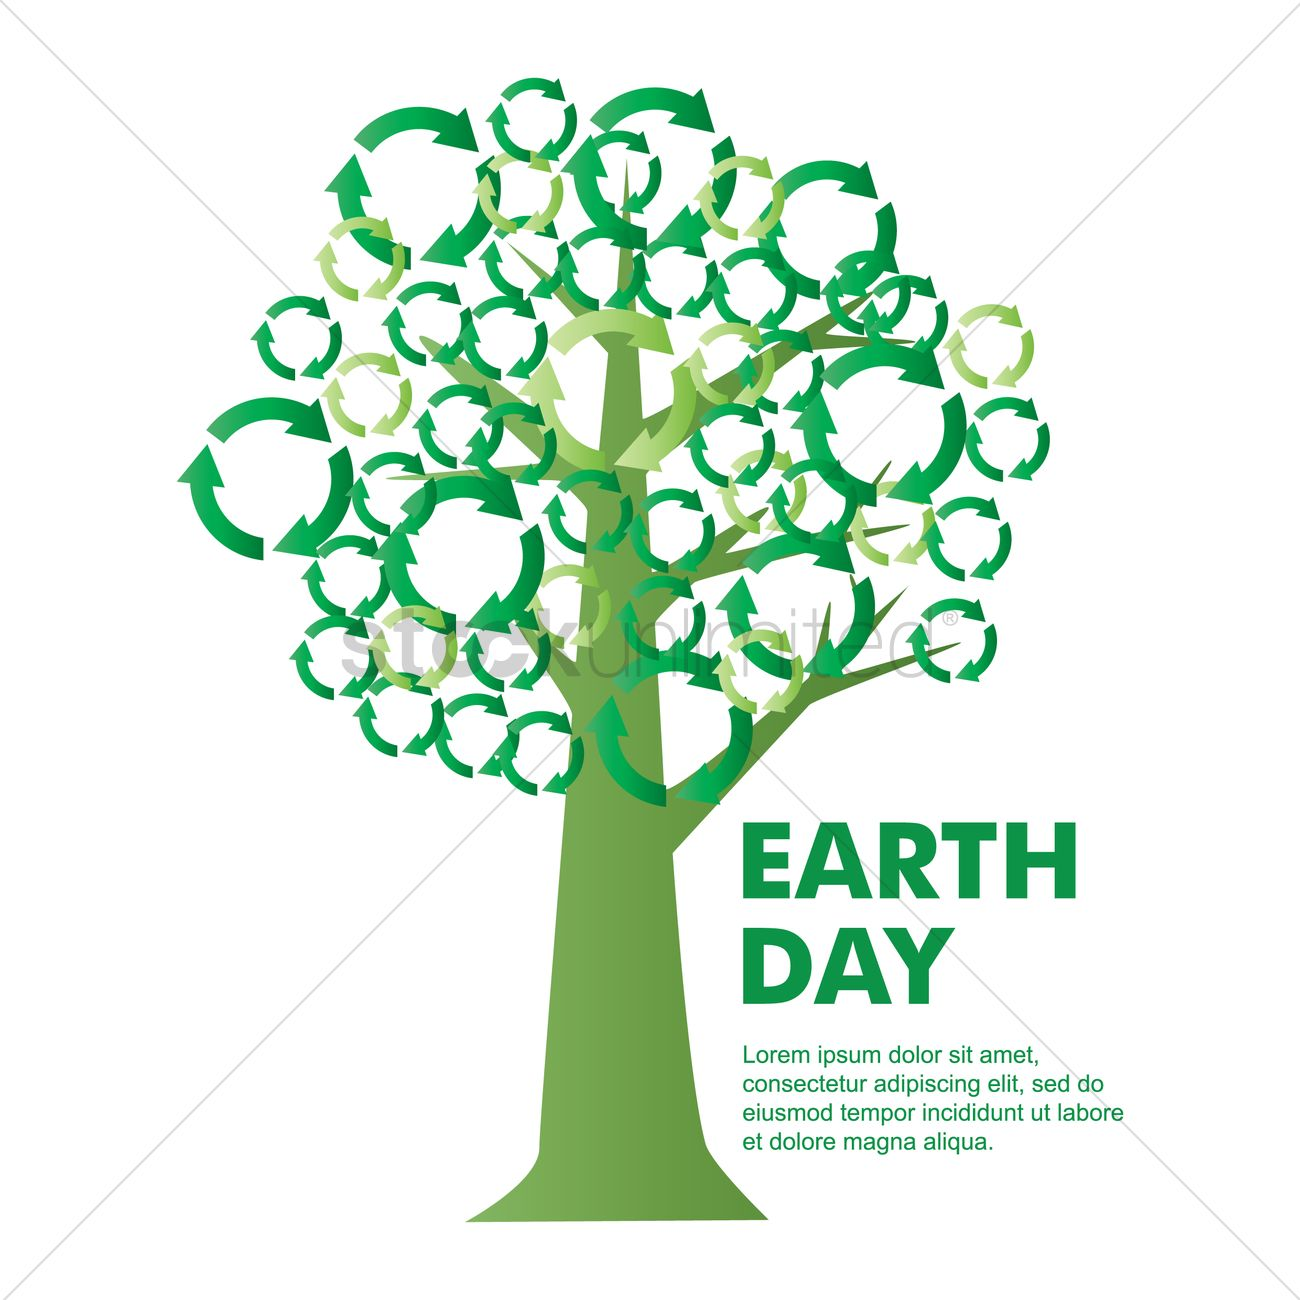 Tree With Recycle Symbols Vector Image 1276701 Stockunlimited